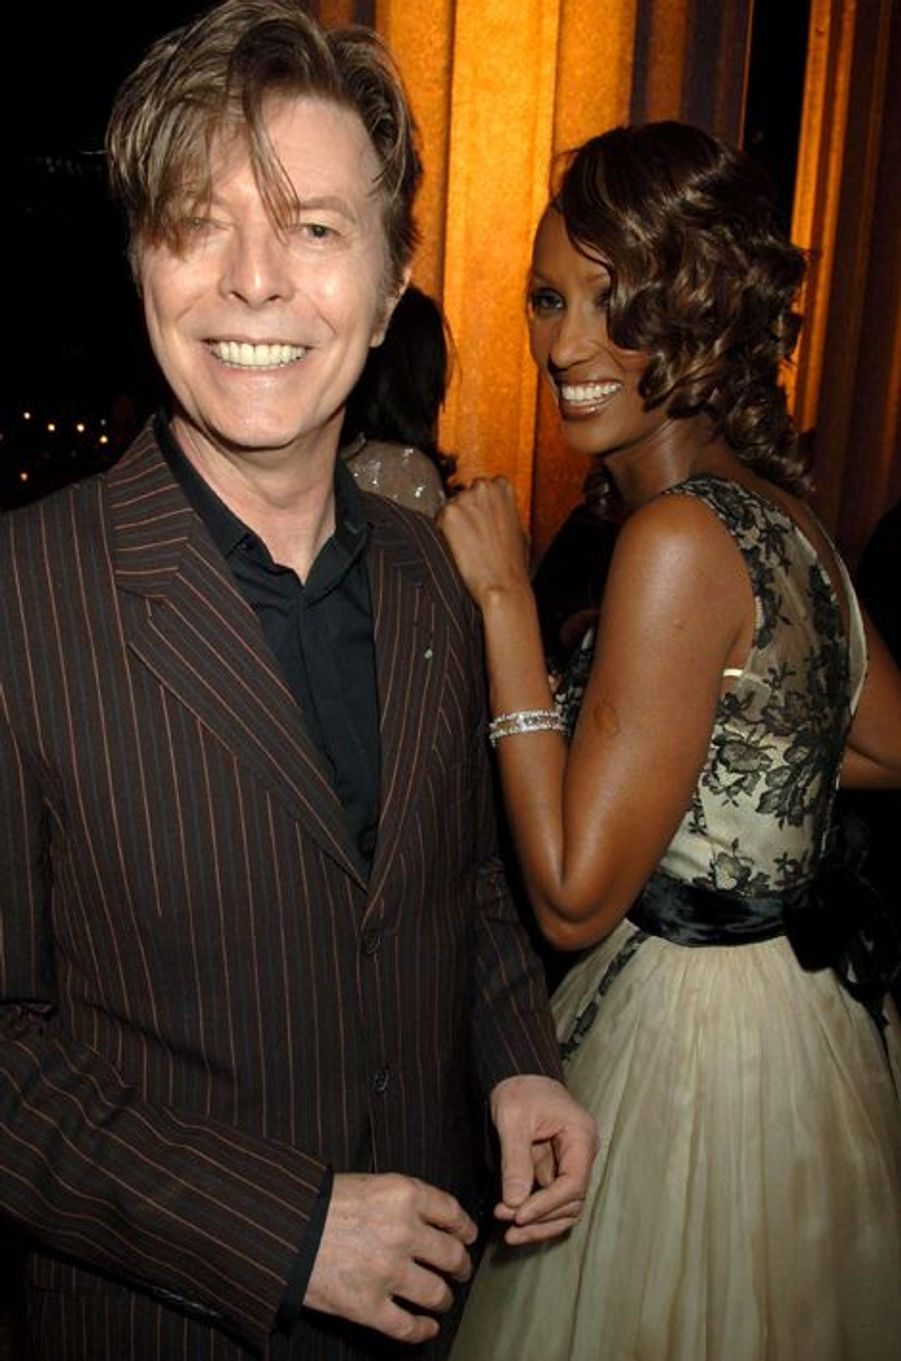 David Bowie et son épouse Iman, avril 2004